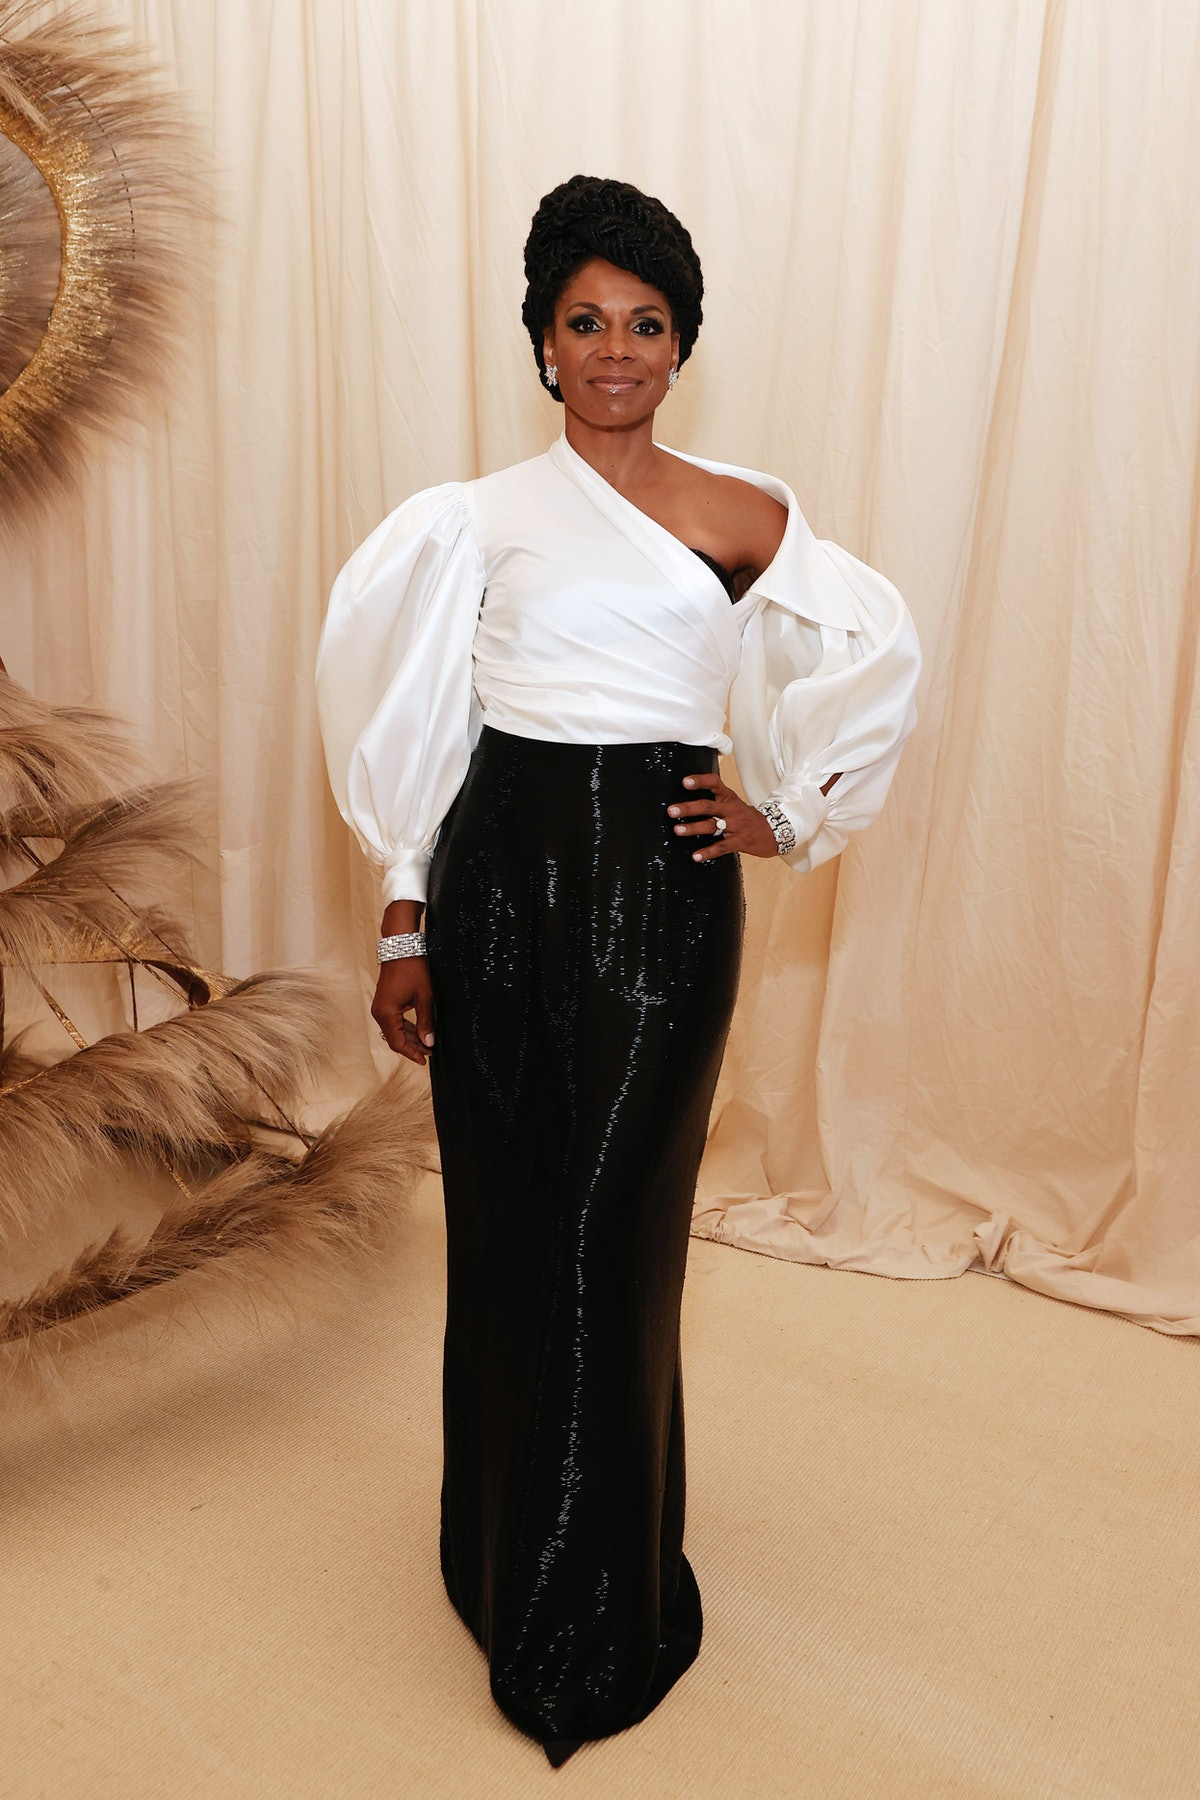 Audra McDonald attends The 2021 Met Gala Celebrating In America: A Lexicon Of Fashion at Metropolit...